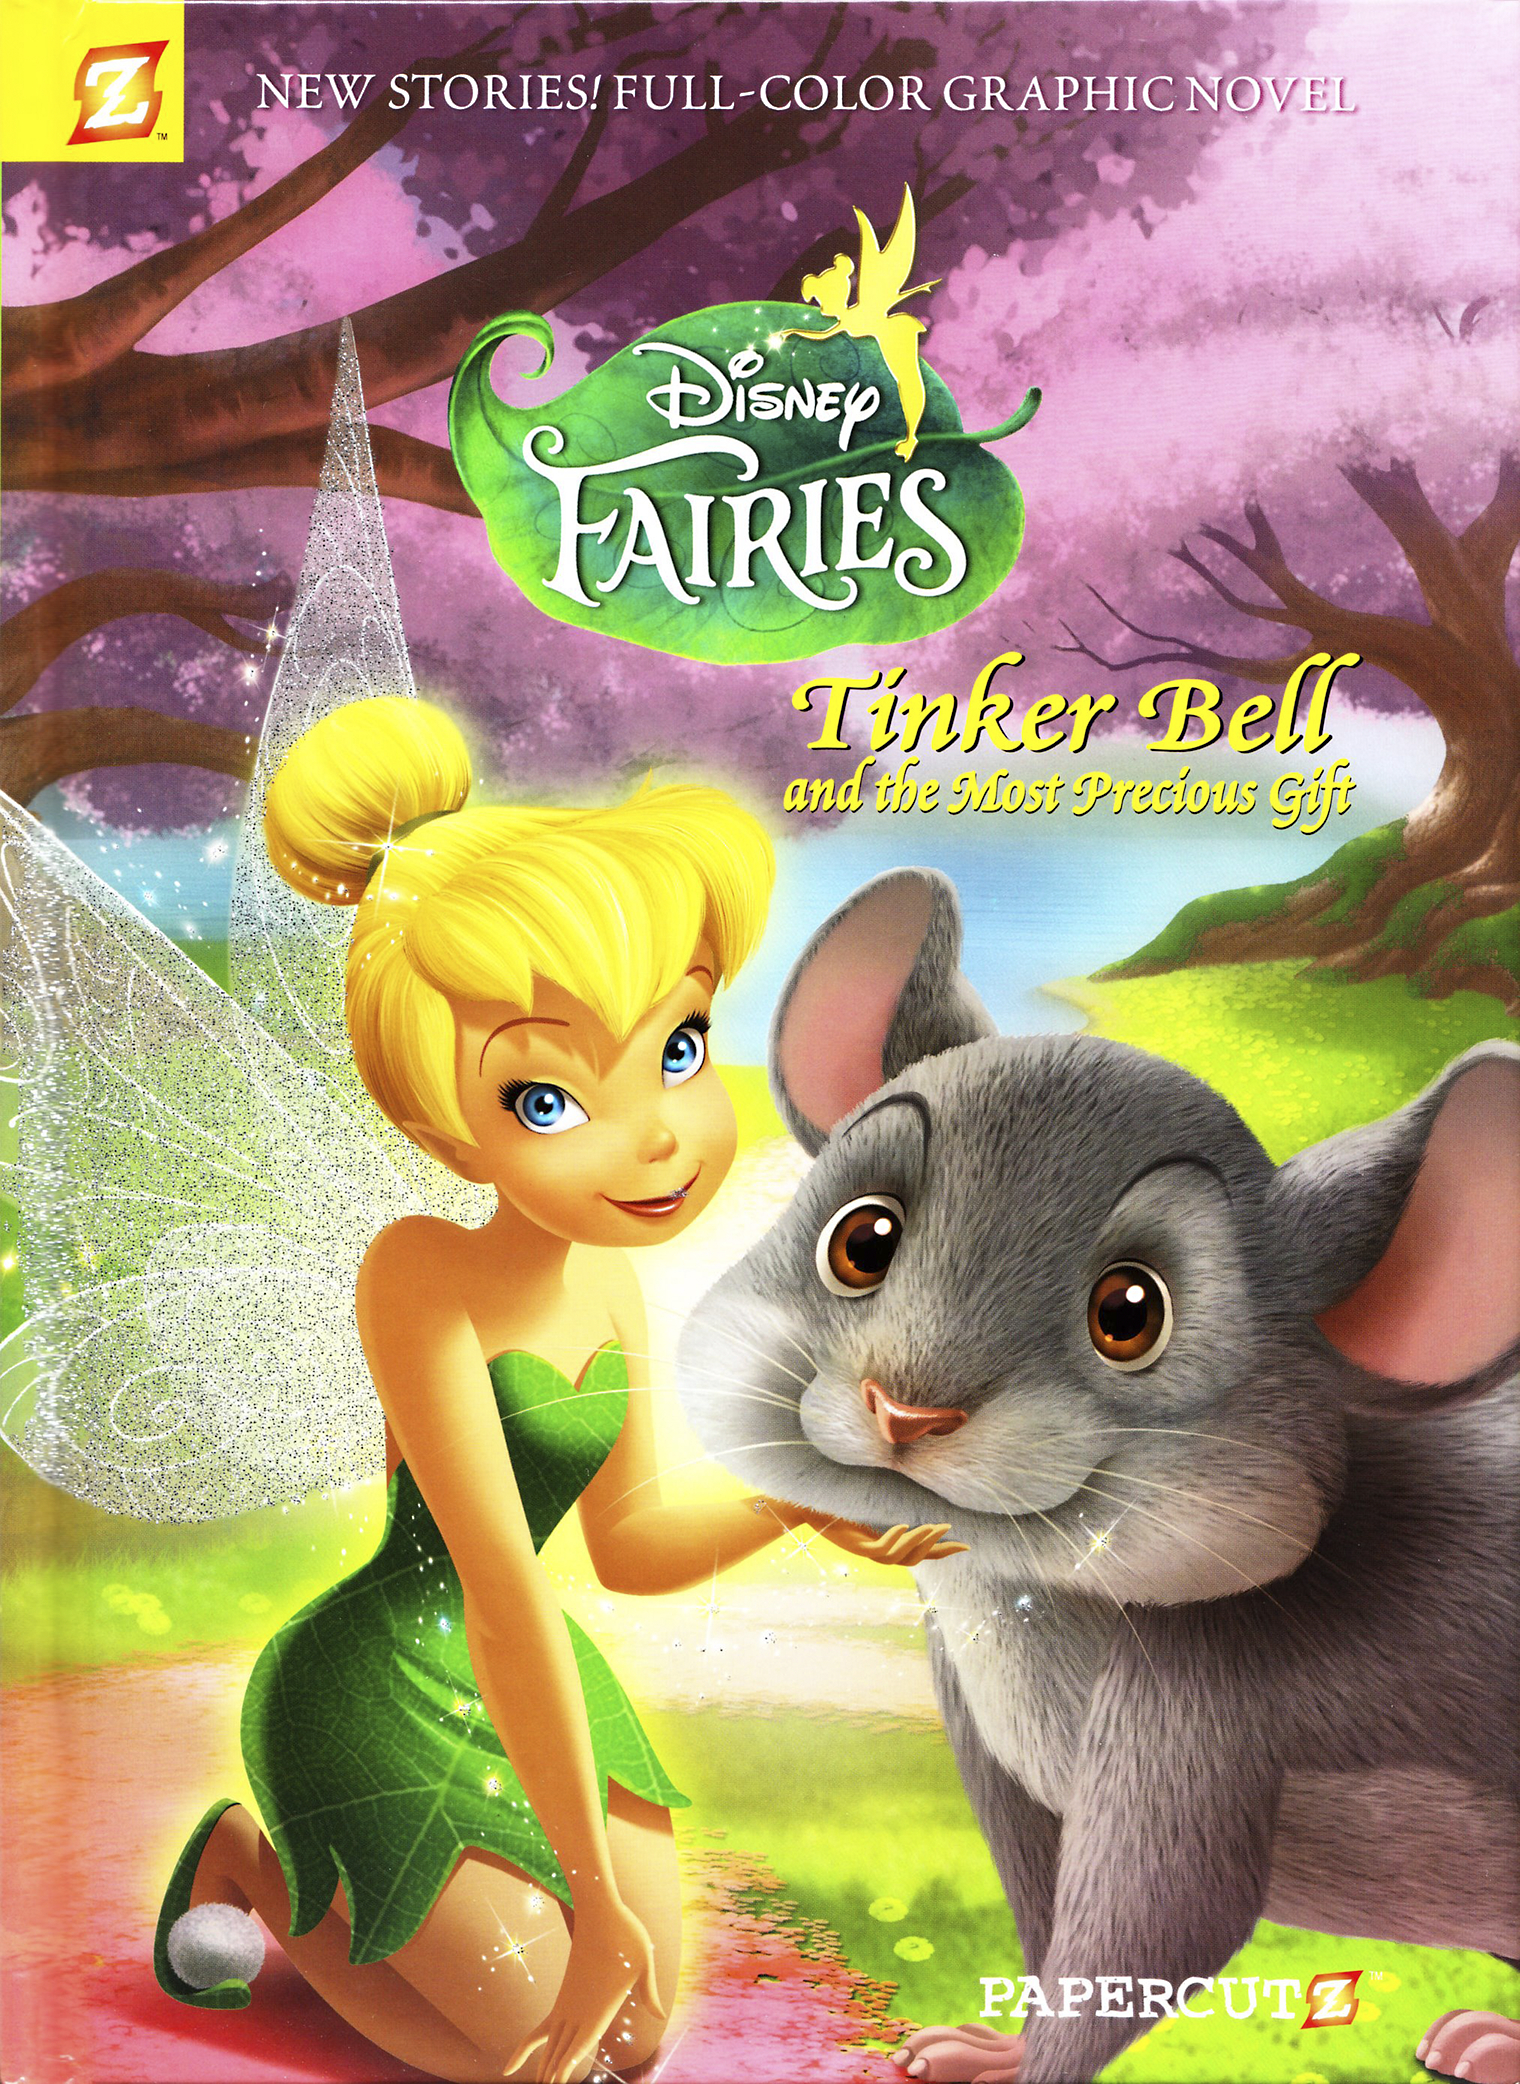 DISNEY FAIRIES HC VOL 11 MOST PRECIOUS GIFT